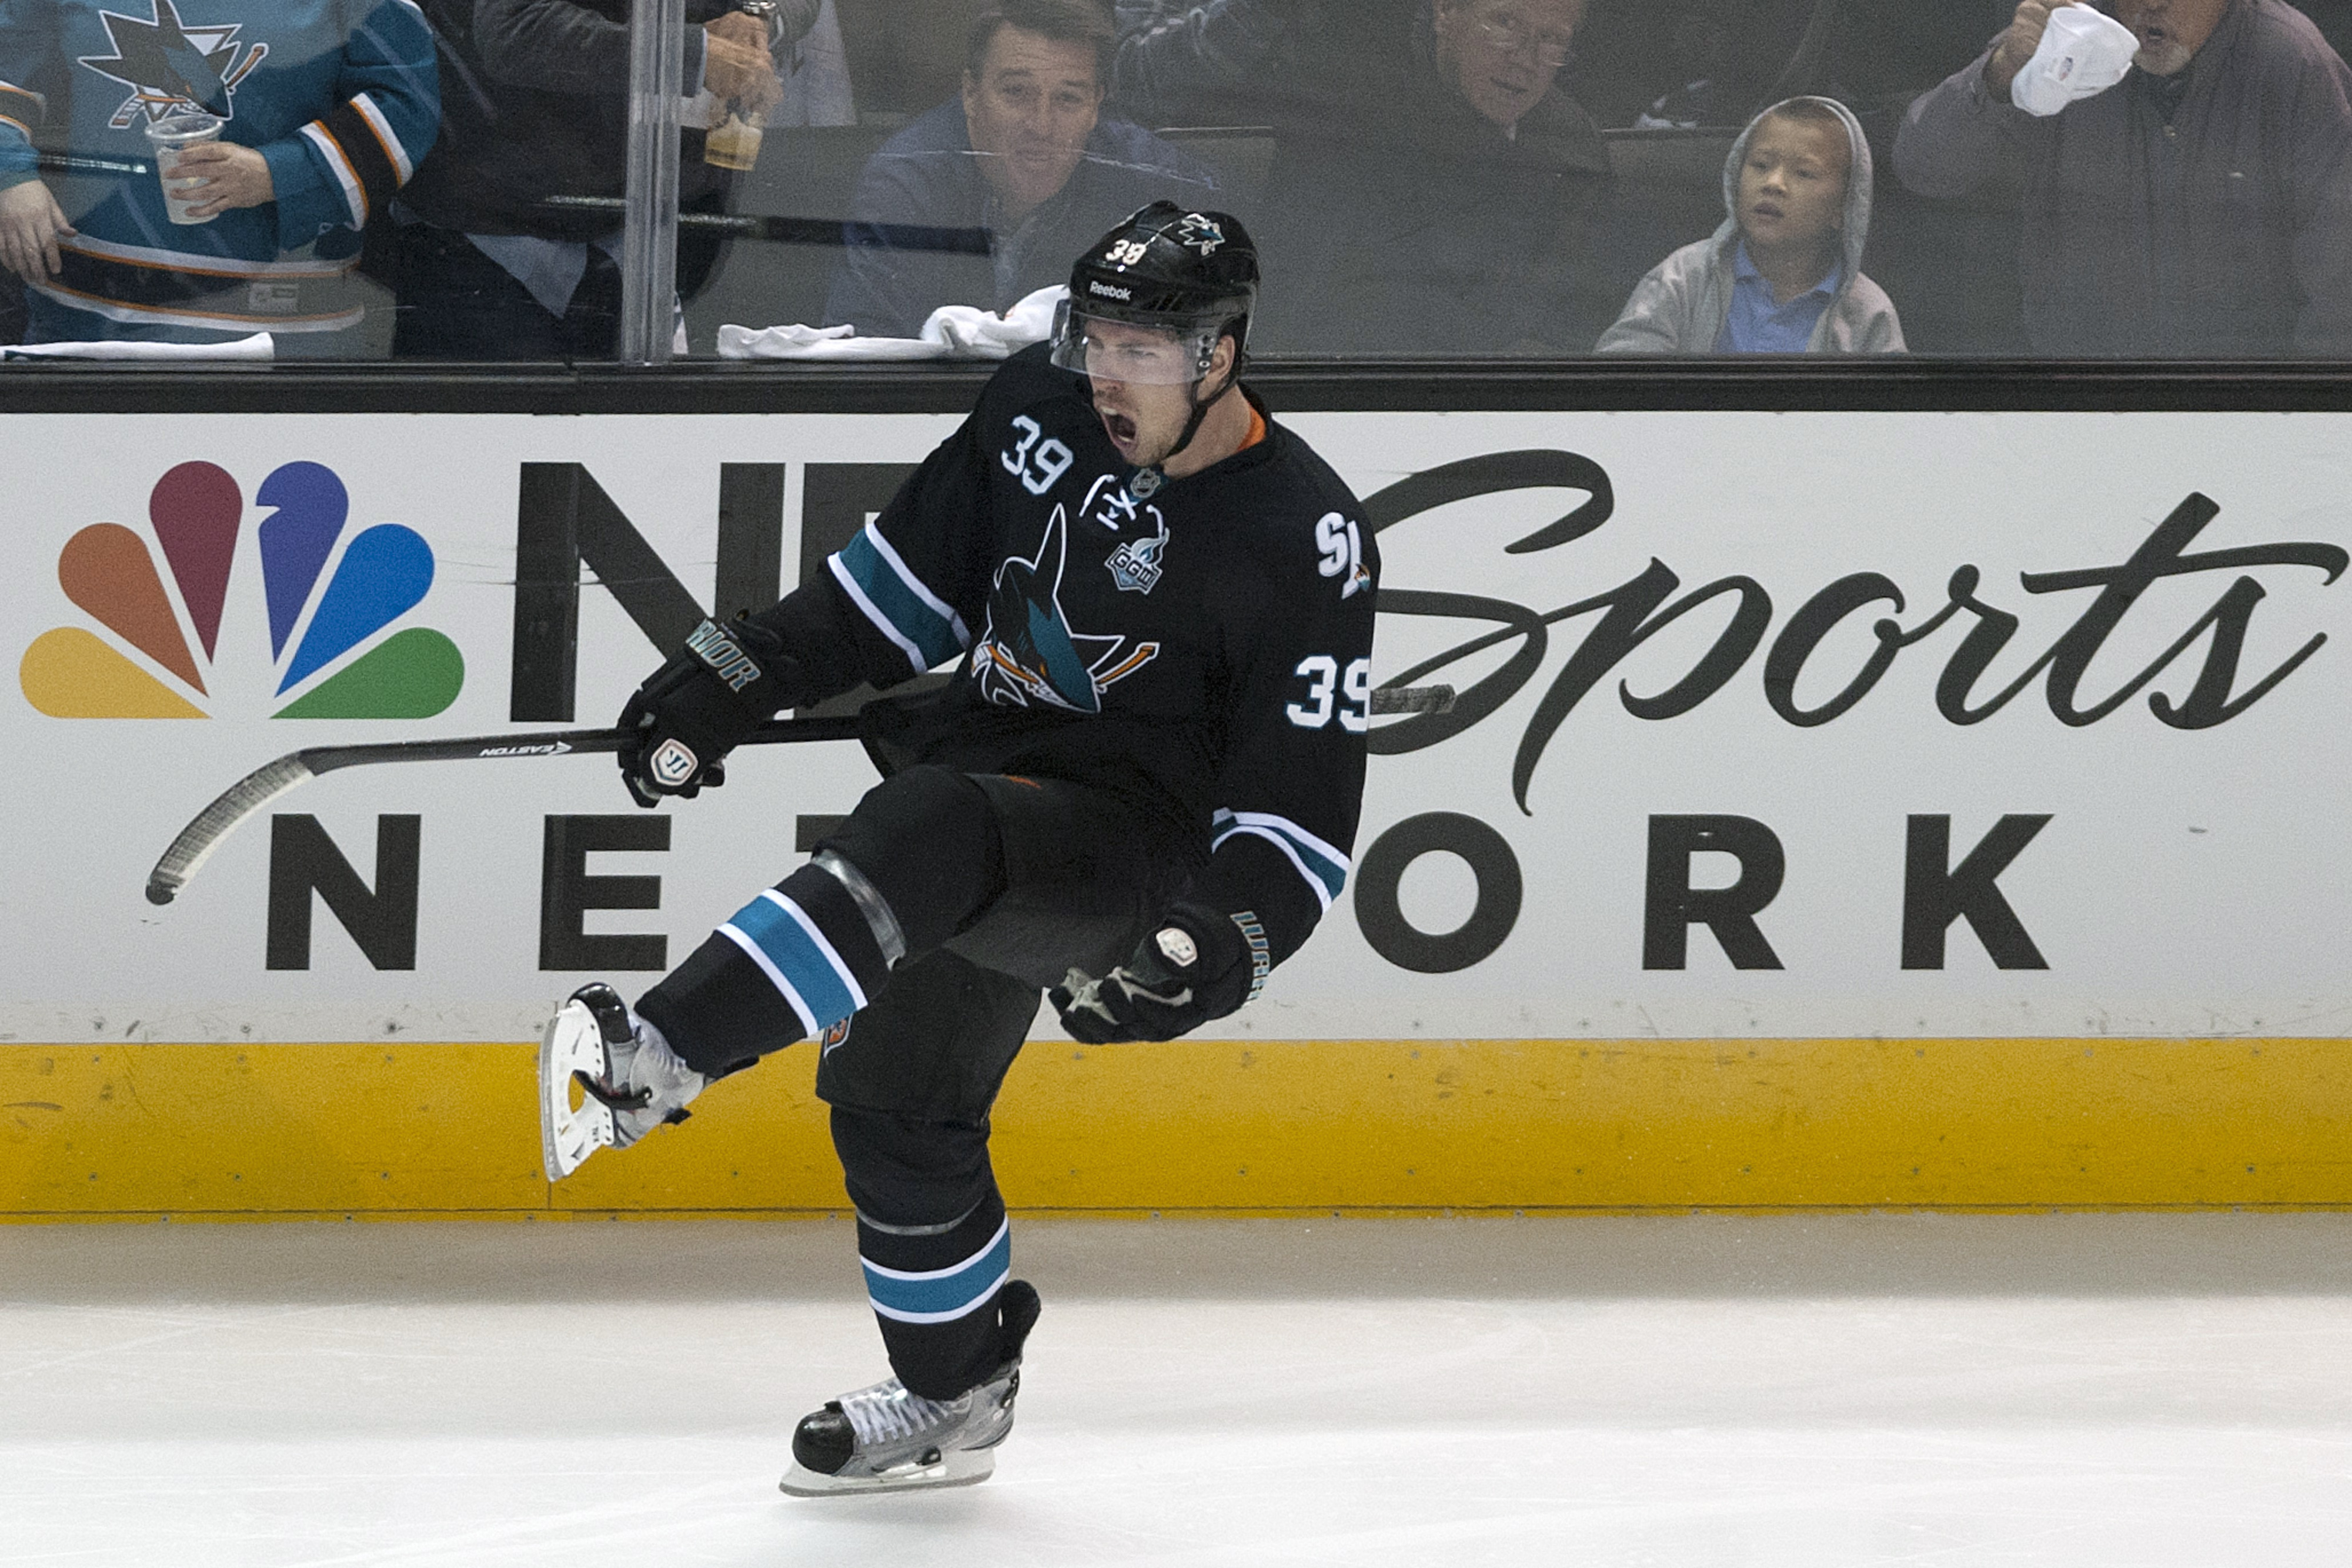 Logan Couture celebrating his new deal